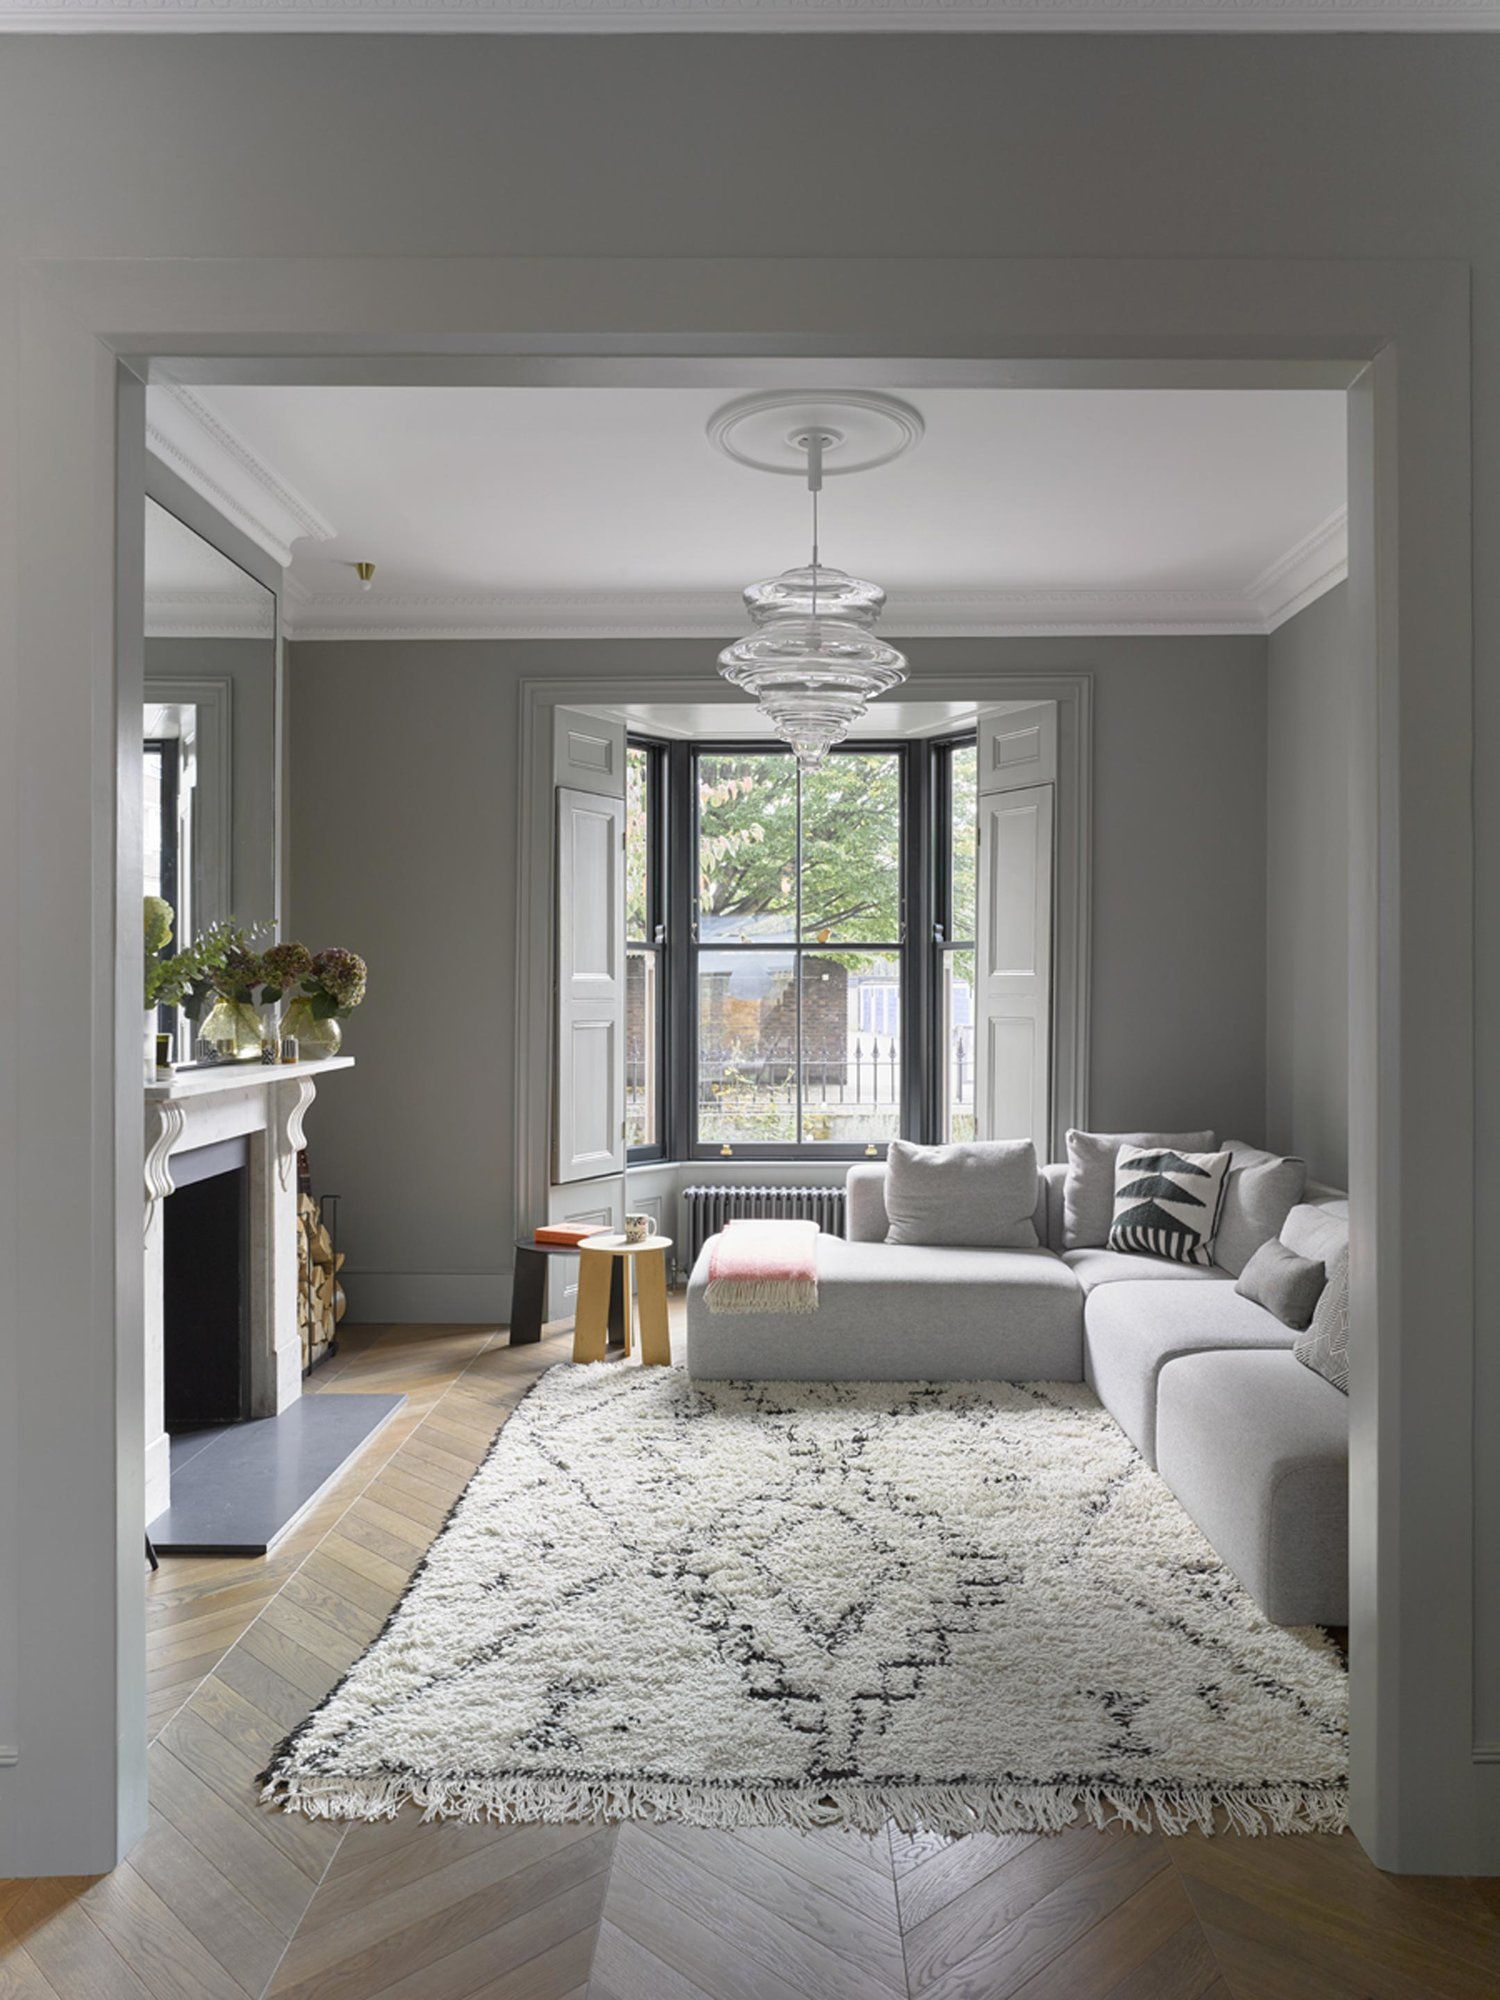 Light Fixture In Basement Victorian Living Room Living Room Grey Trendy Living Rooms